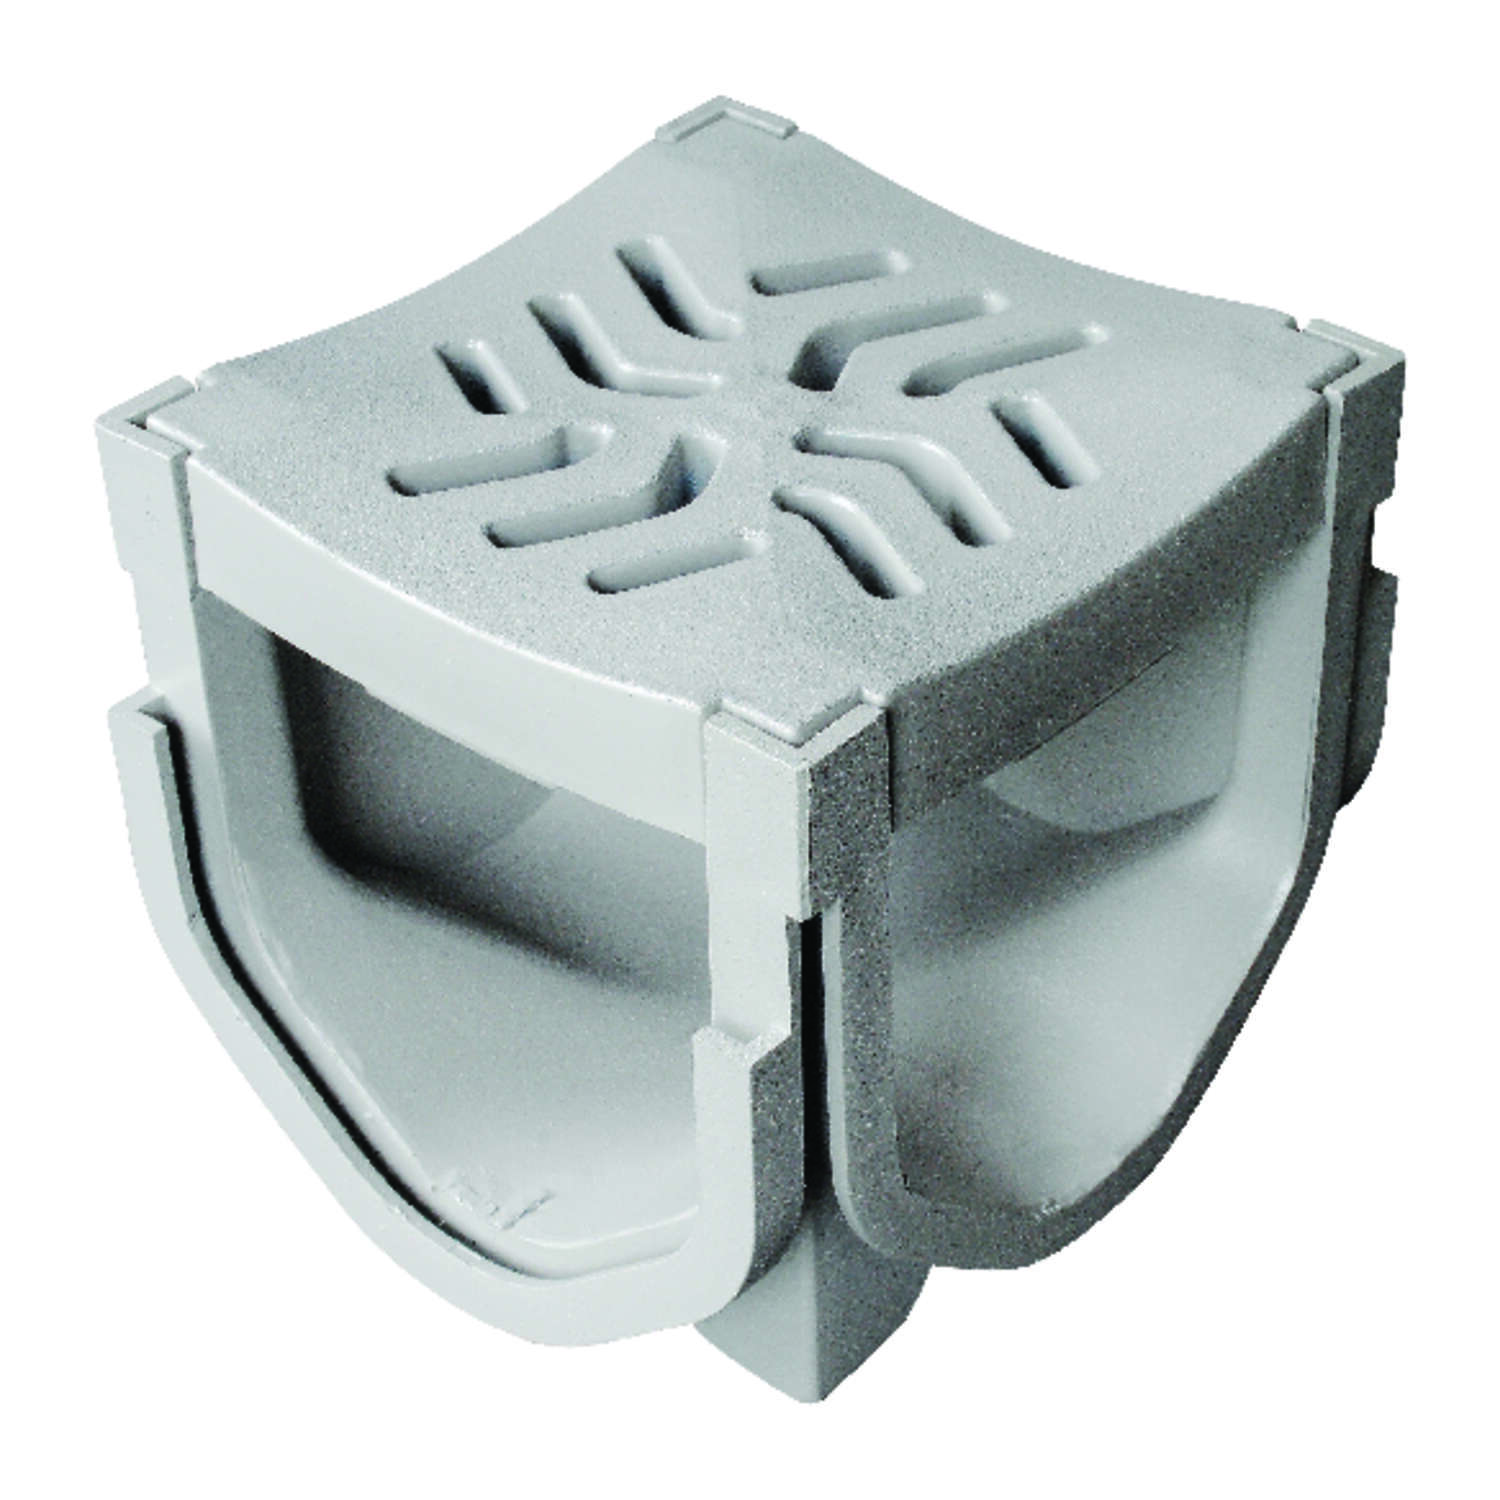 Fernco  Storm Drain Plus  Gray  Square  Polypropylene  Channel Grate